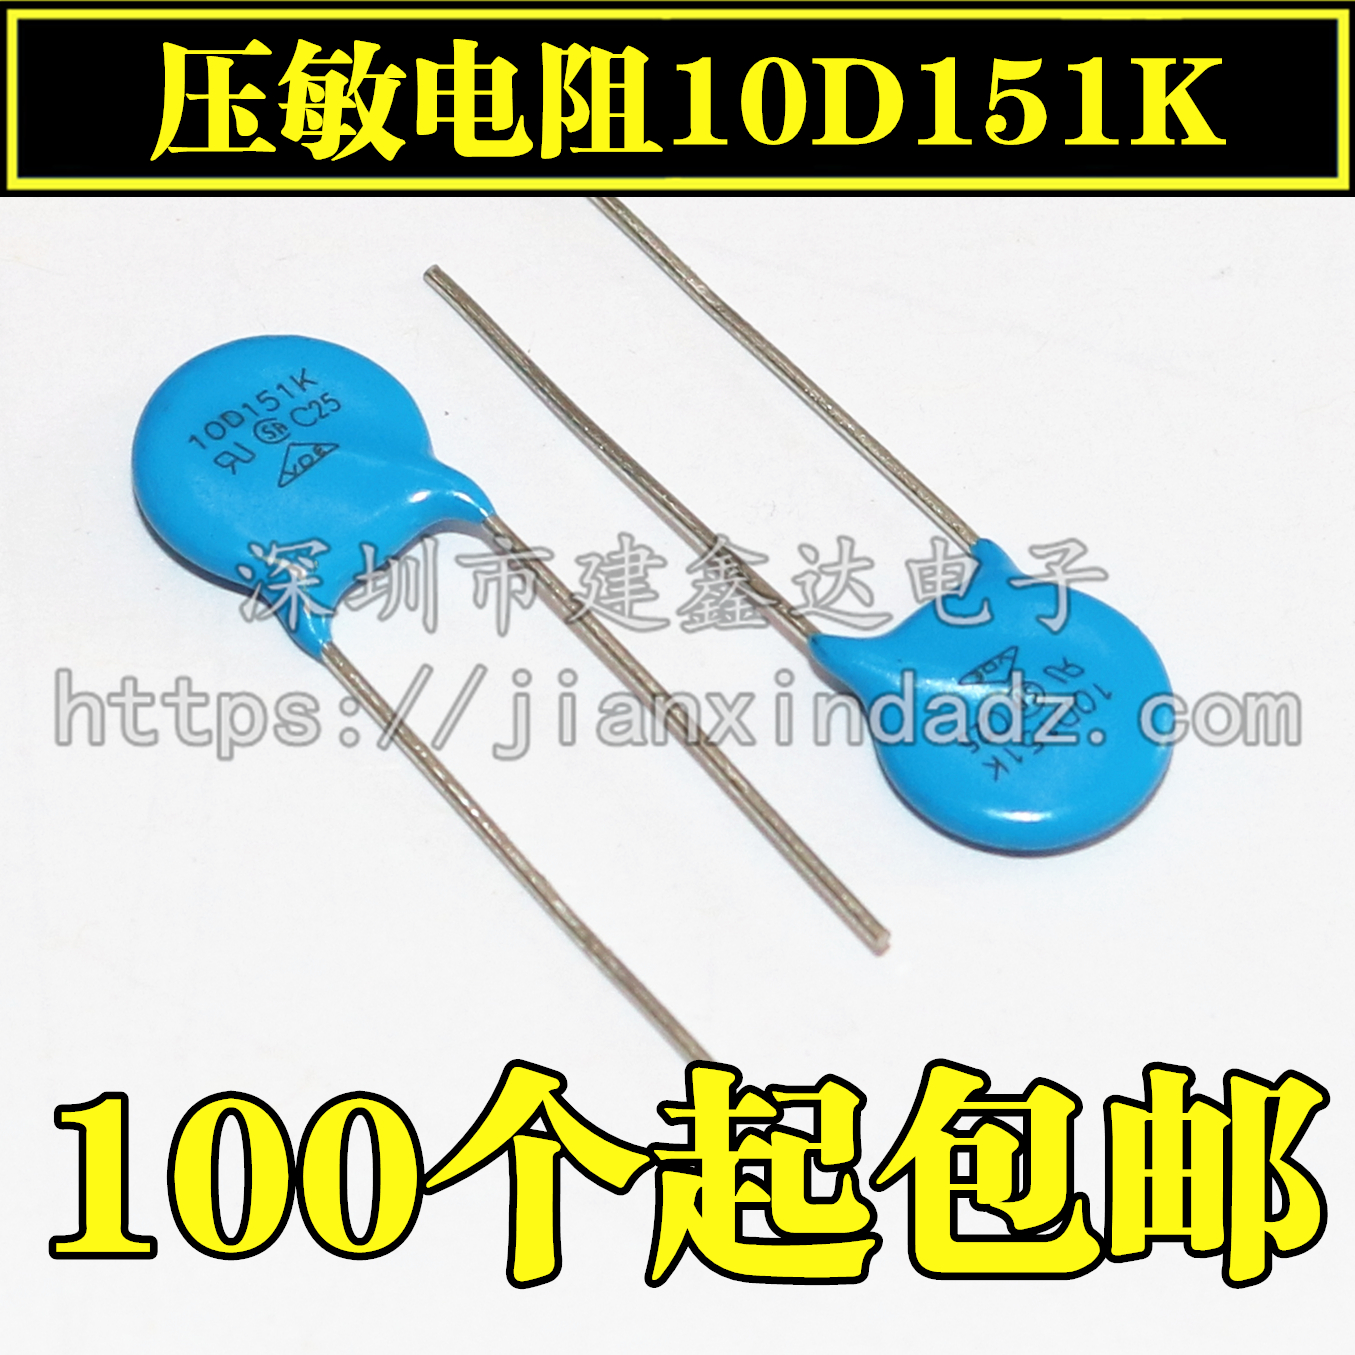 New  genuine  10D151K 150V  varistor   resistance  direct insertion 1 package 500 = 60 yuan